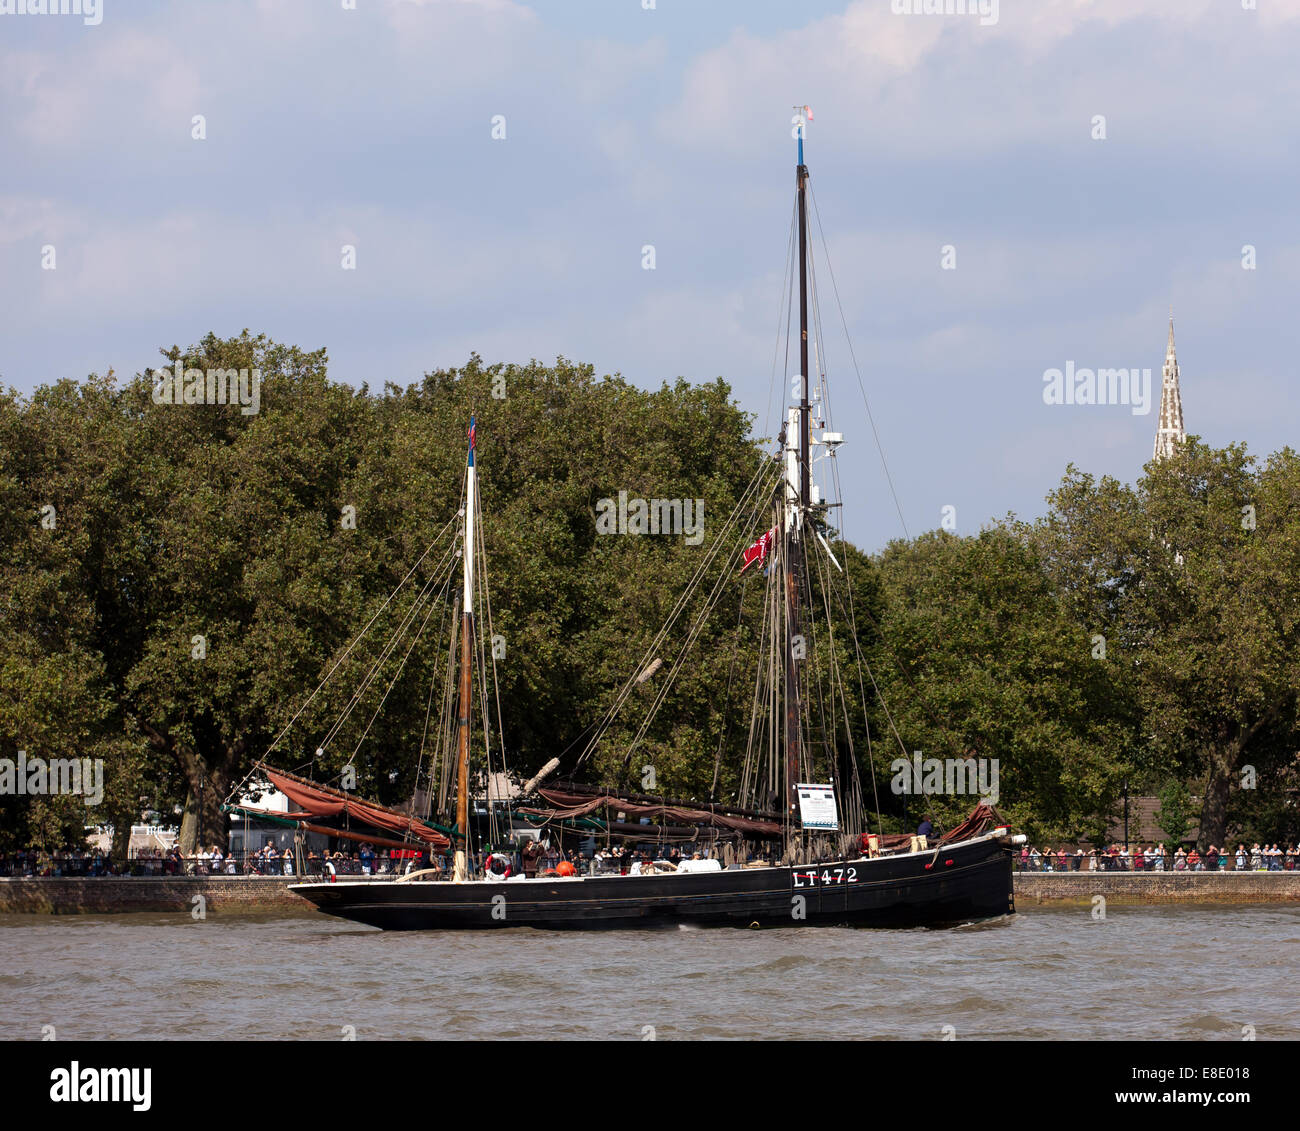 Excelsior,  a 1921, Lowestoft smack, taking part in the parade of sail, during the Tall Ships Festival, Greenwich - Stock Image